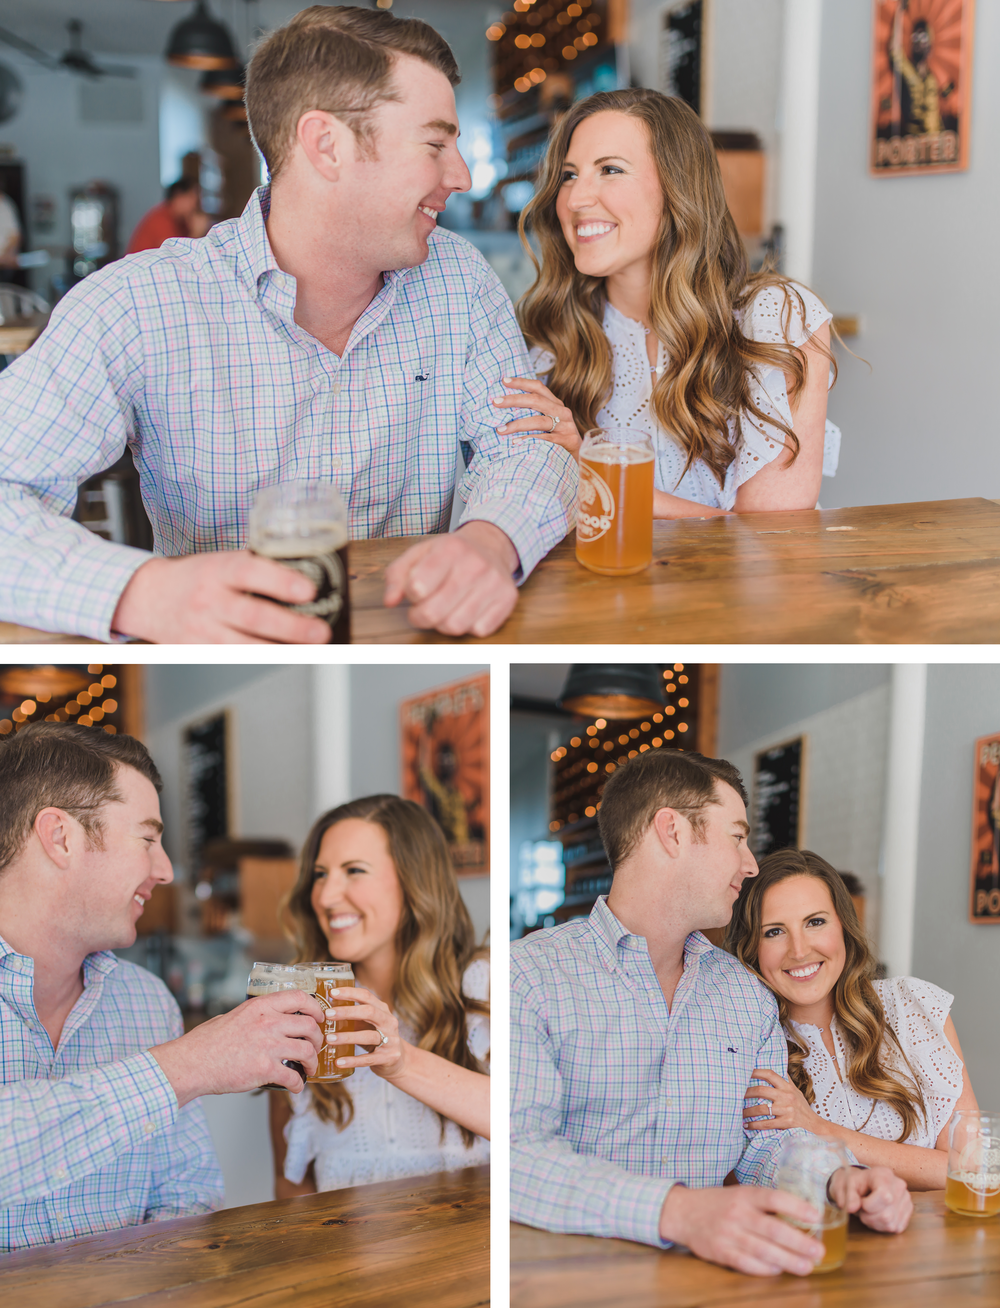 Liz and JB Engagement_Gallery 1.png